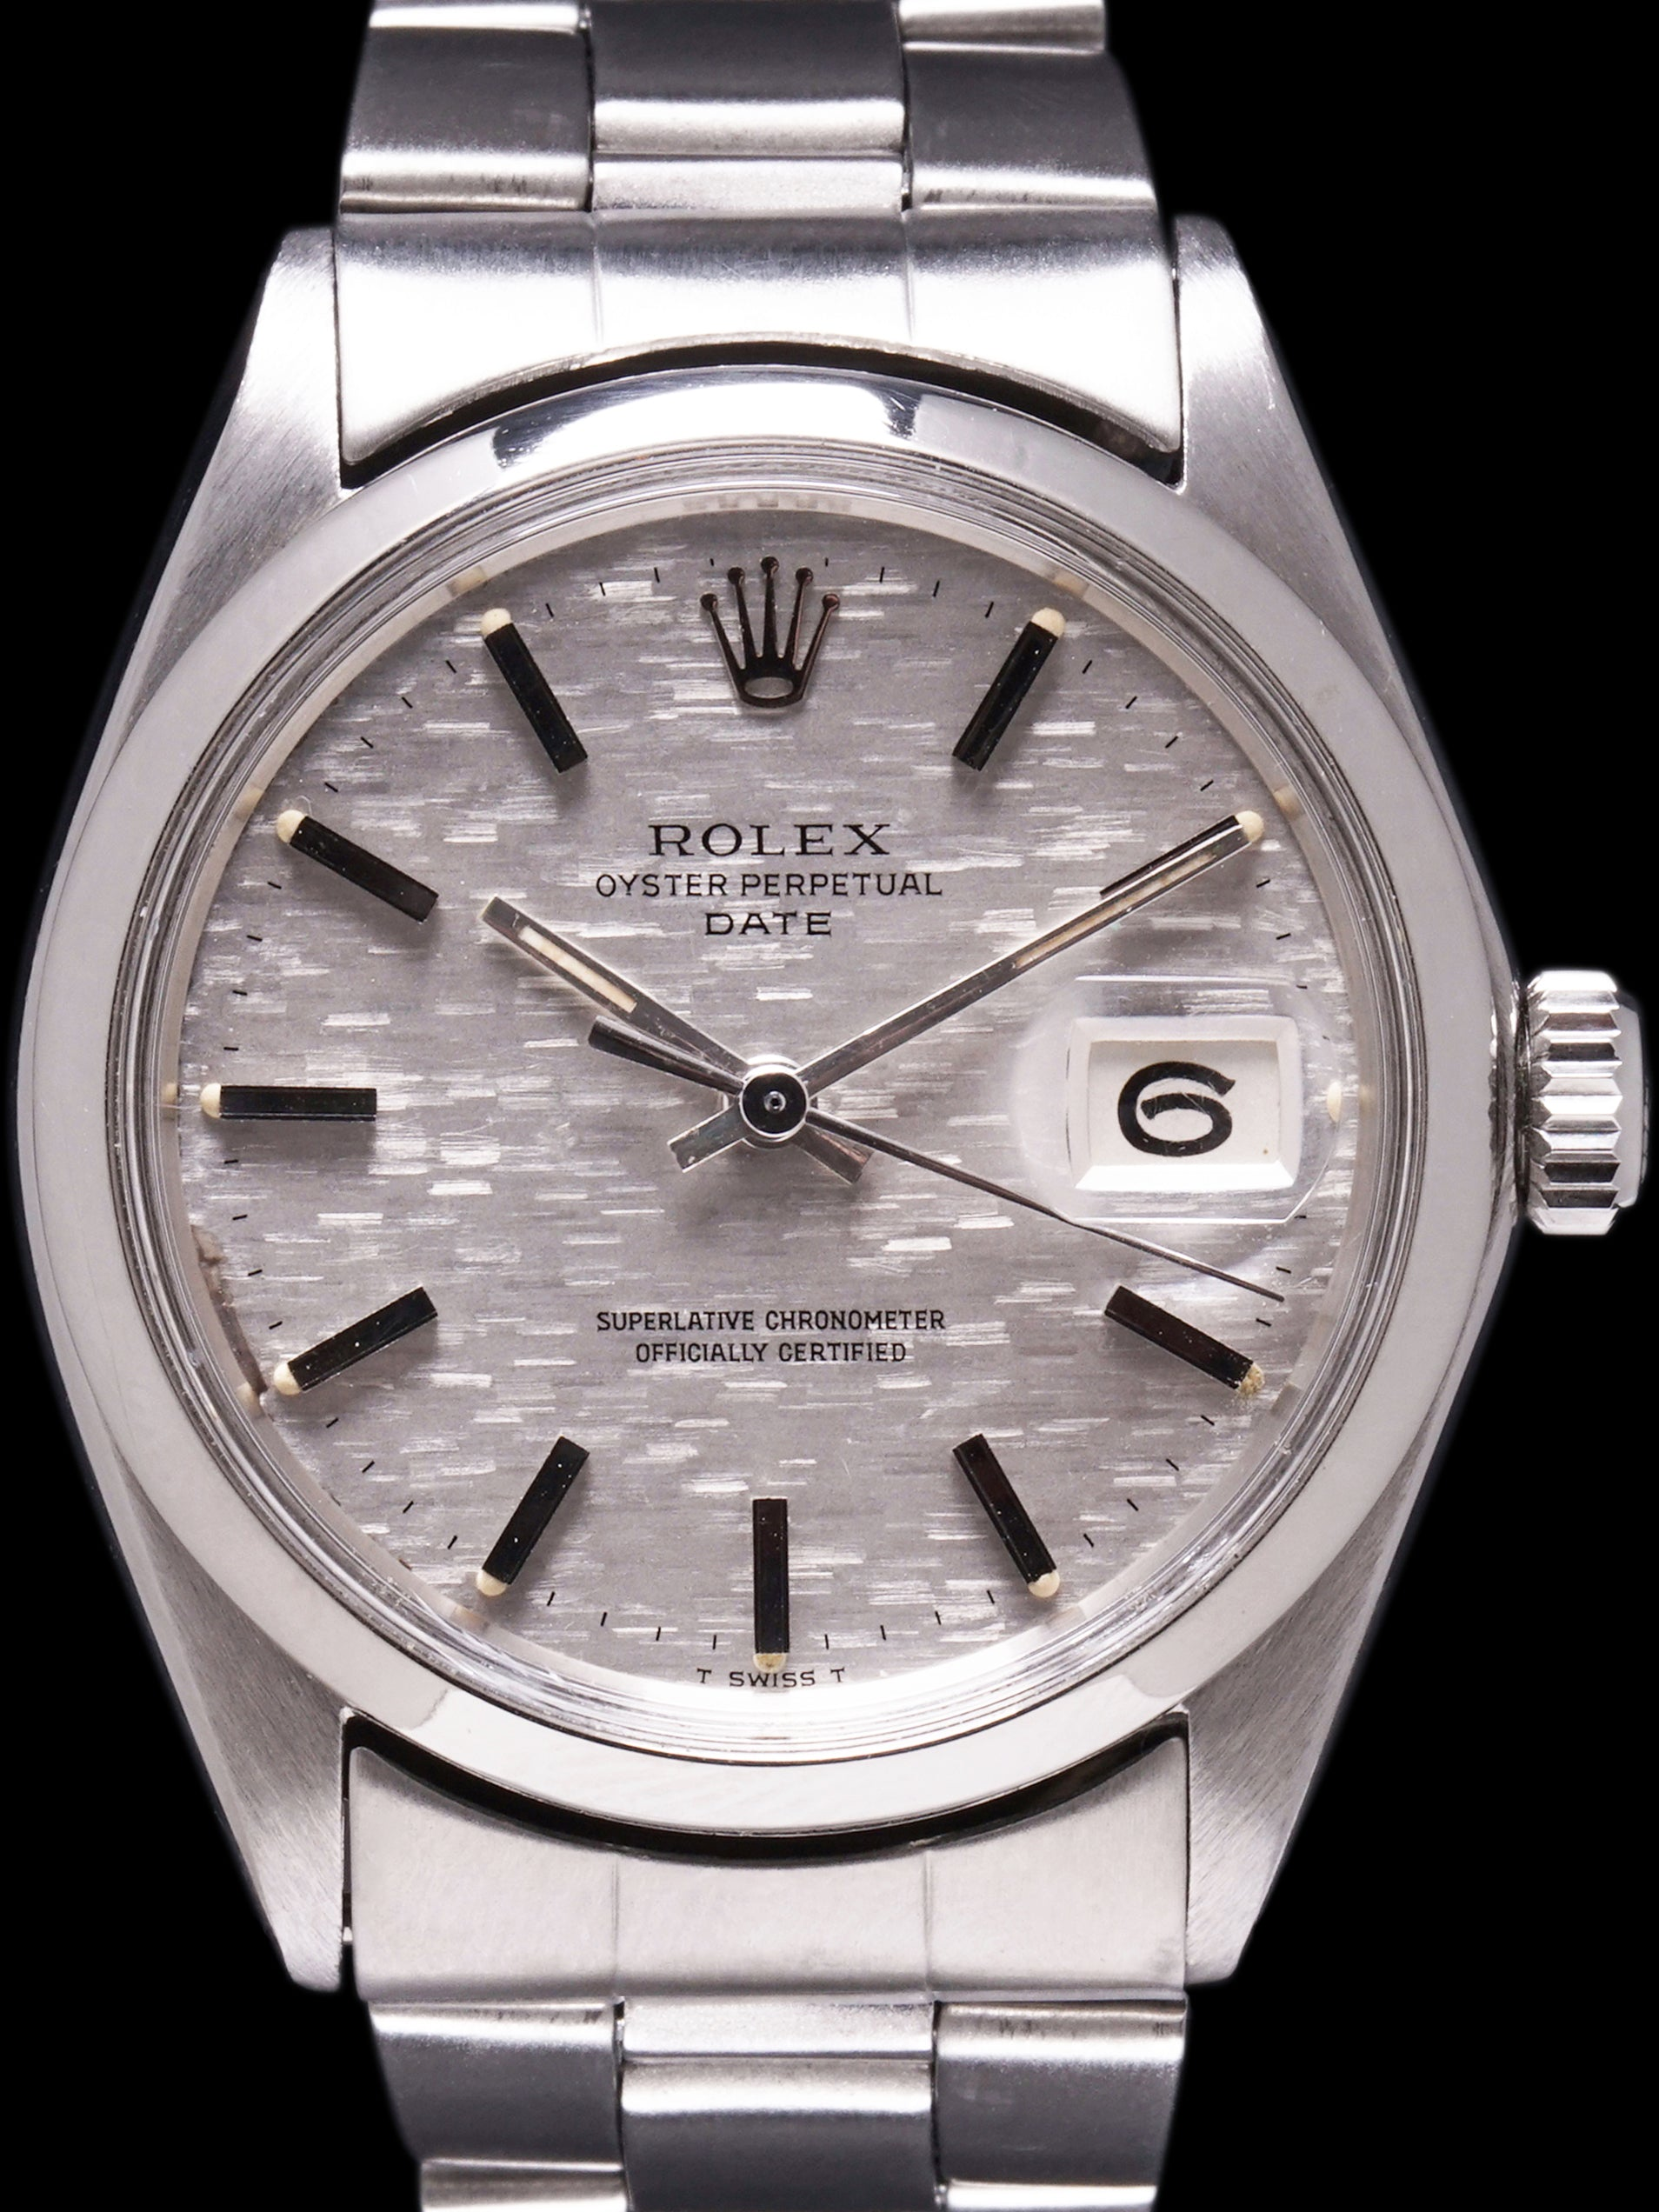 1970 Rolex Oyster-Perpetual Date (Ref. 1500) Silver Mosaic Dial